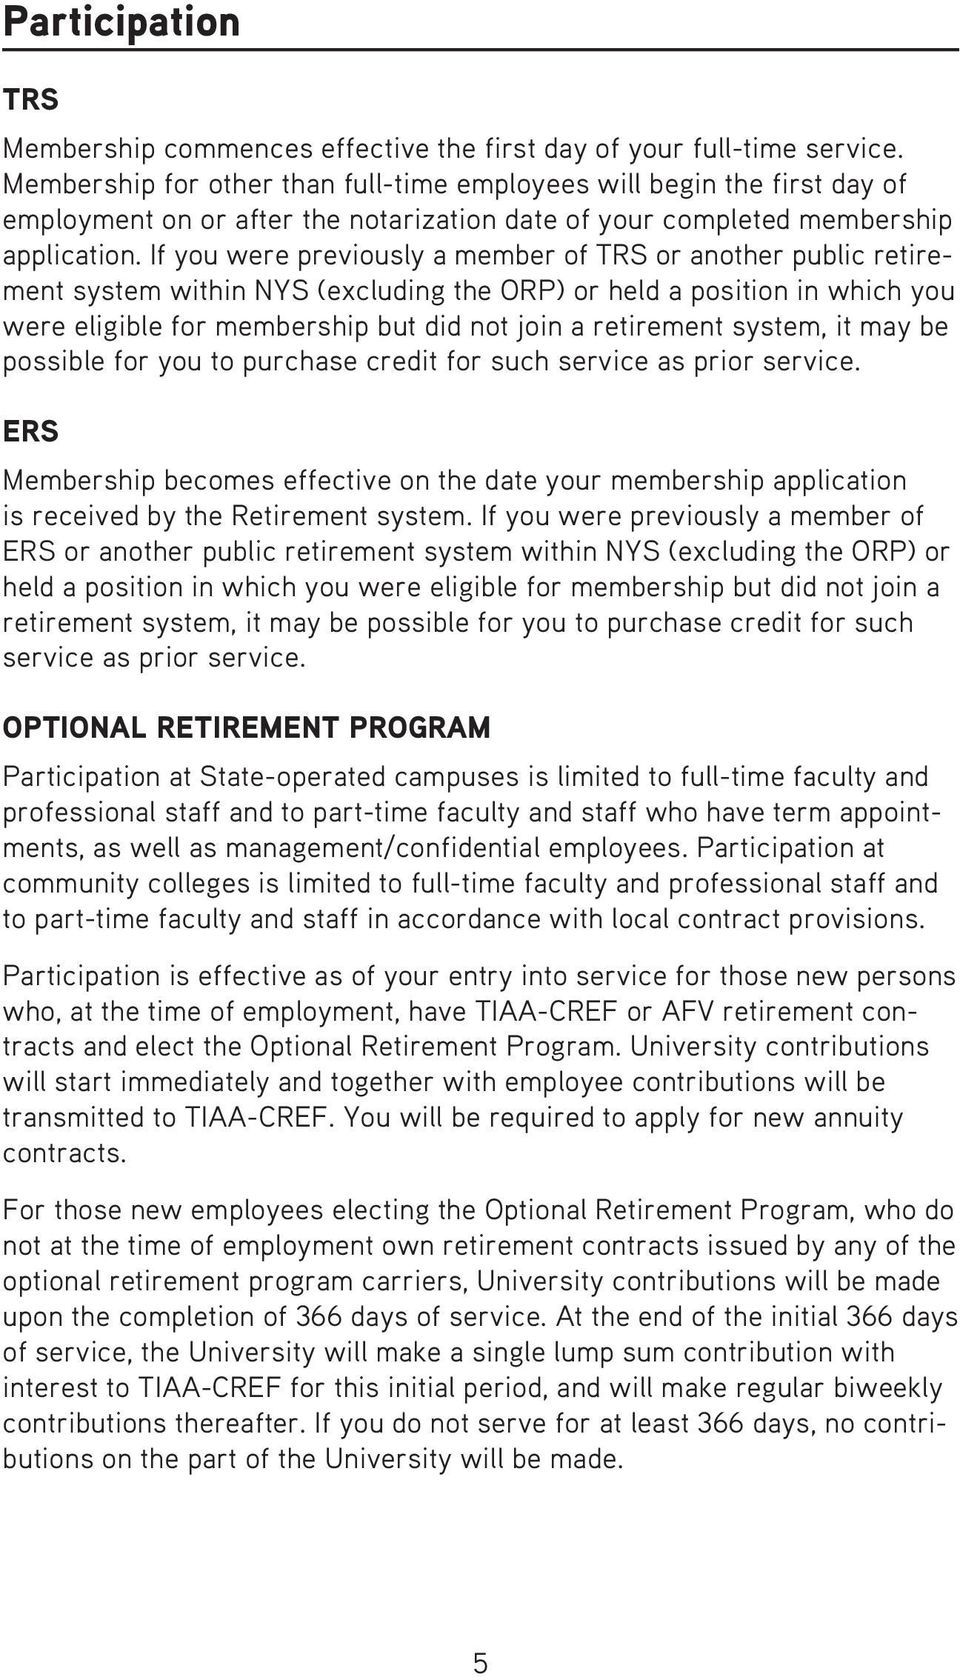 If you were previously a member of TRS or another public retire - ment system within NYS (excluding the ORP) or held a position in which you were eligible for membership but did not join a retirement